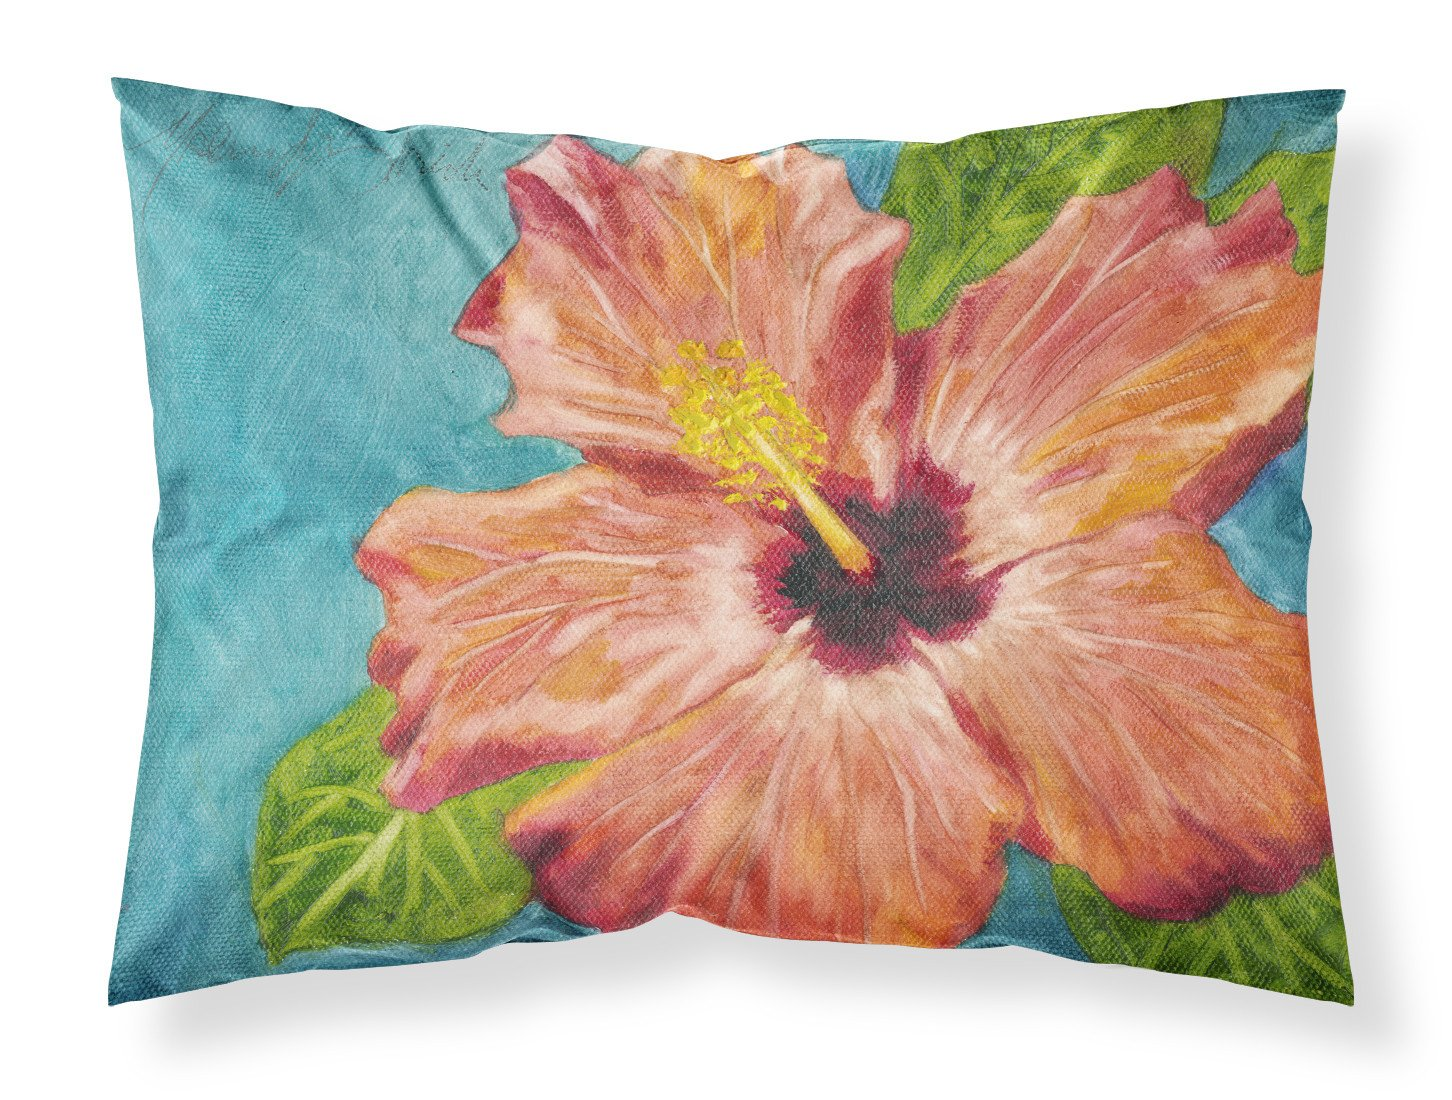 Coral Hibiscus by Malenda Trick Fabric Standard Pillowcase TMTR0316PILLOWCASE by Caroline's Treasures